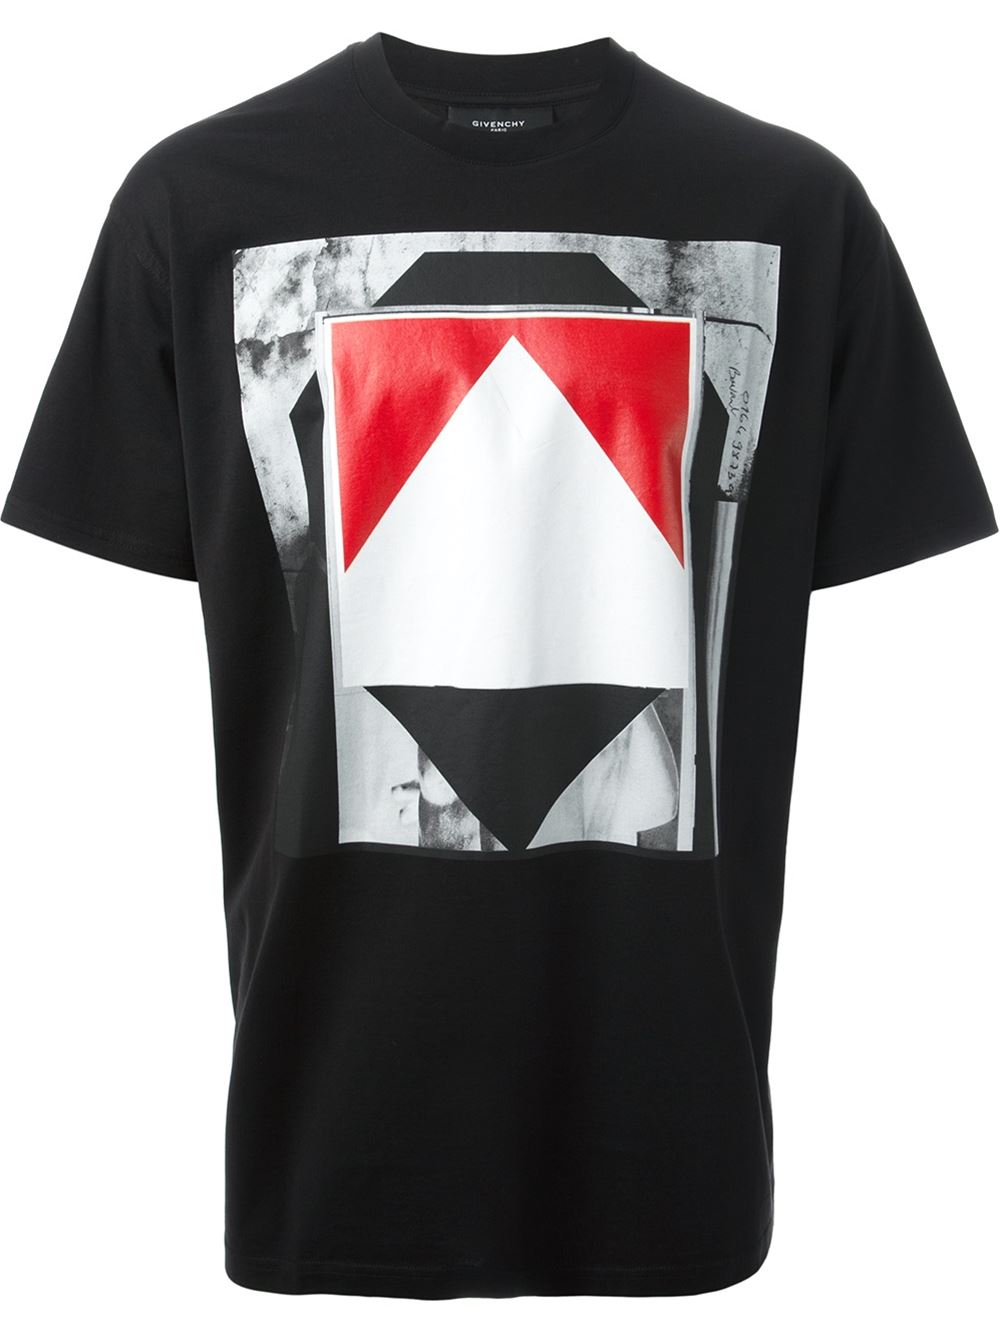 Lyst givenchy printed t shirt in black for men for Givenchy t shirt man